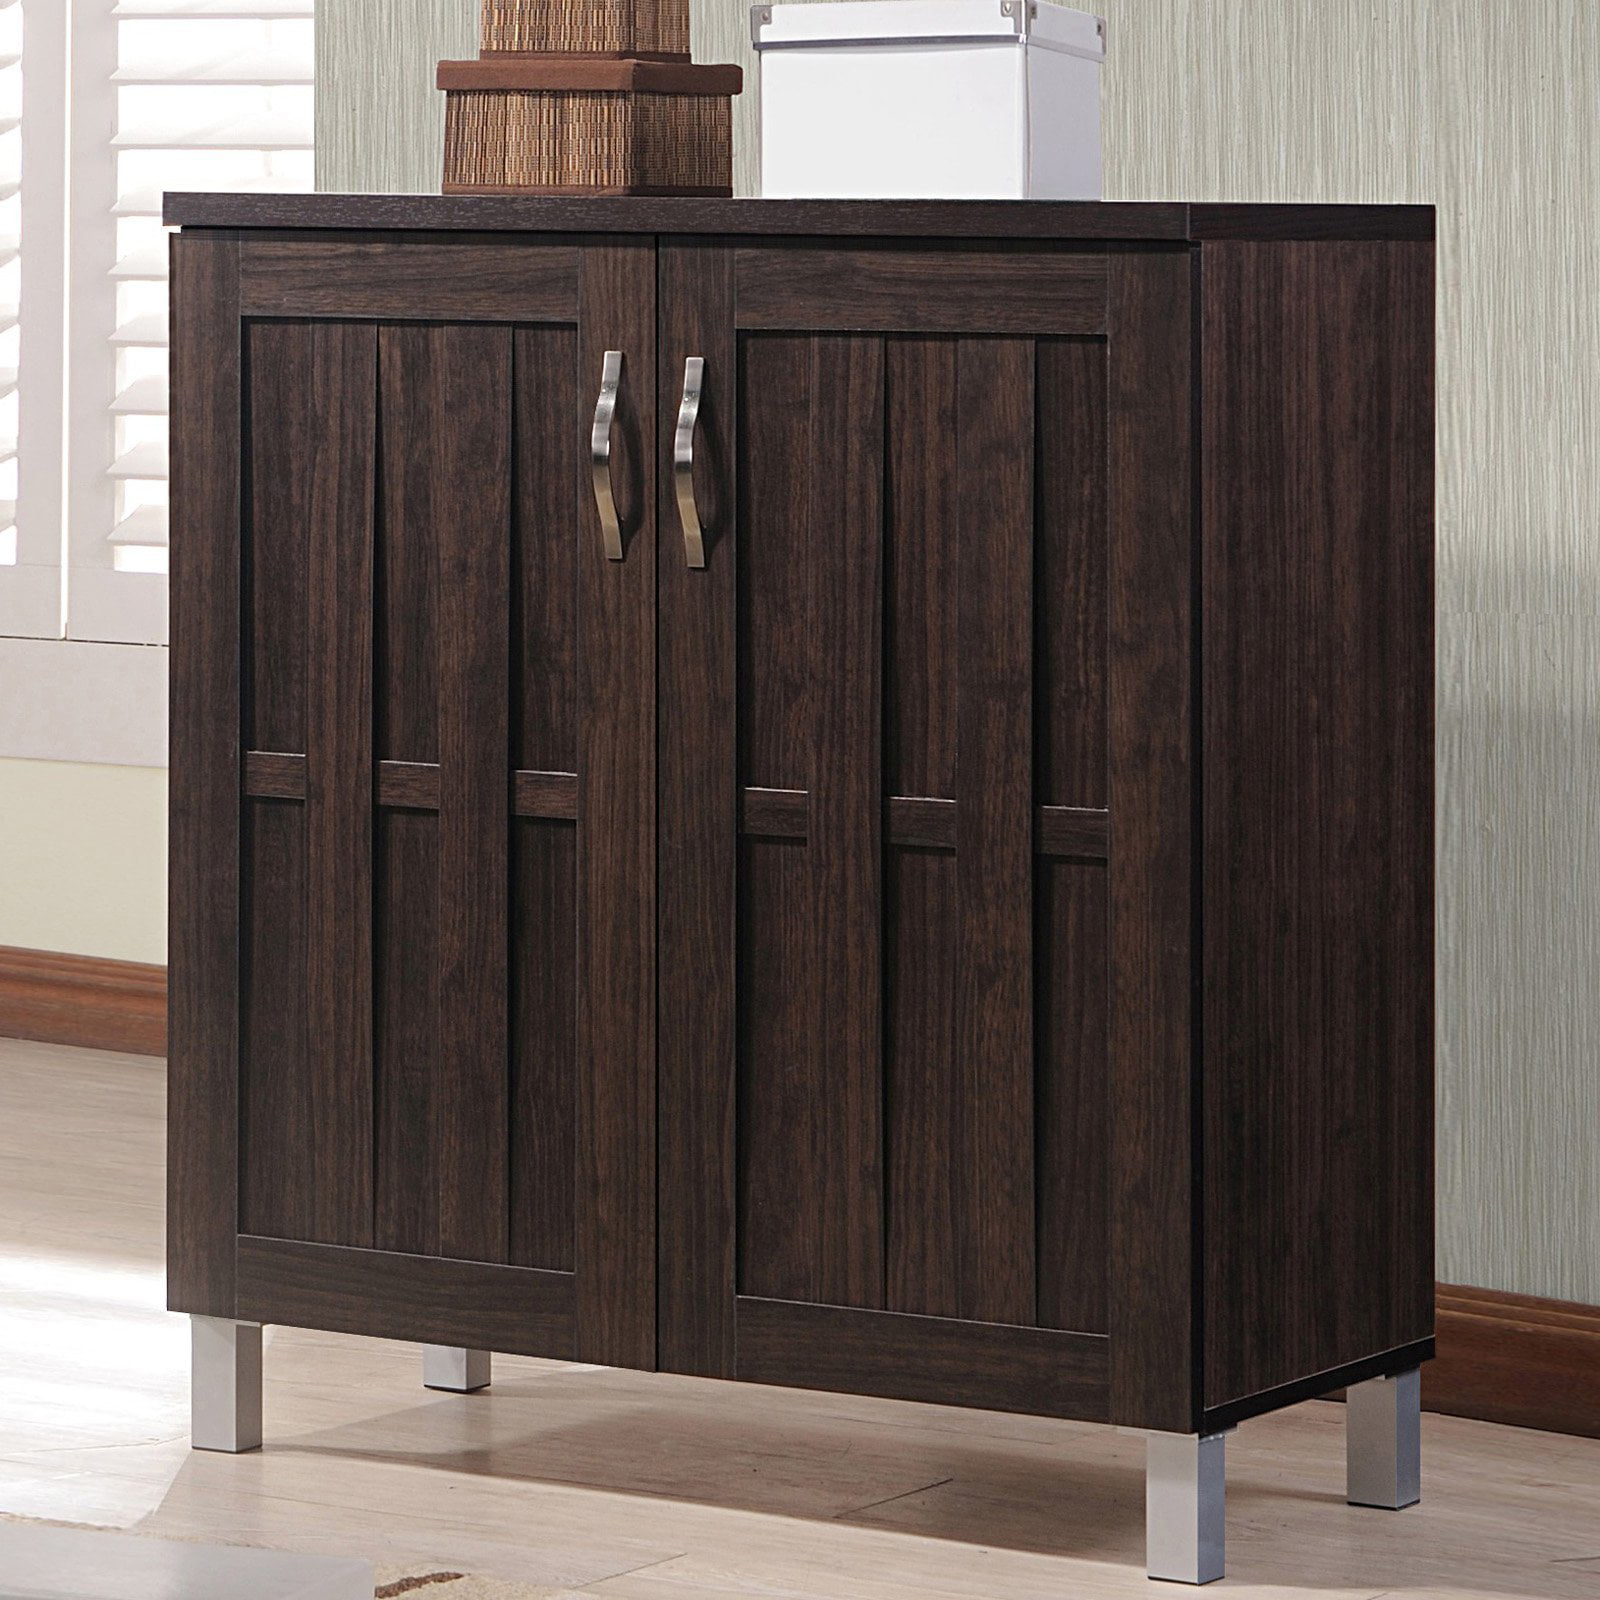 Baxton Studio Excel Modern and Contemporary Dark Brown Sideboard Storage Cabinet by Wholesale Interiors